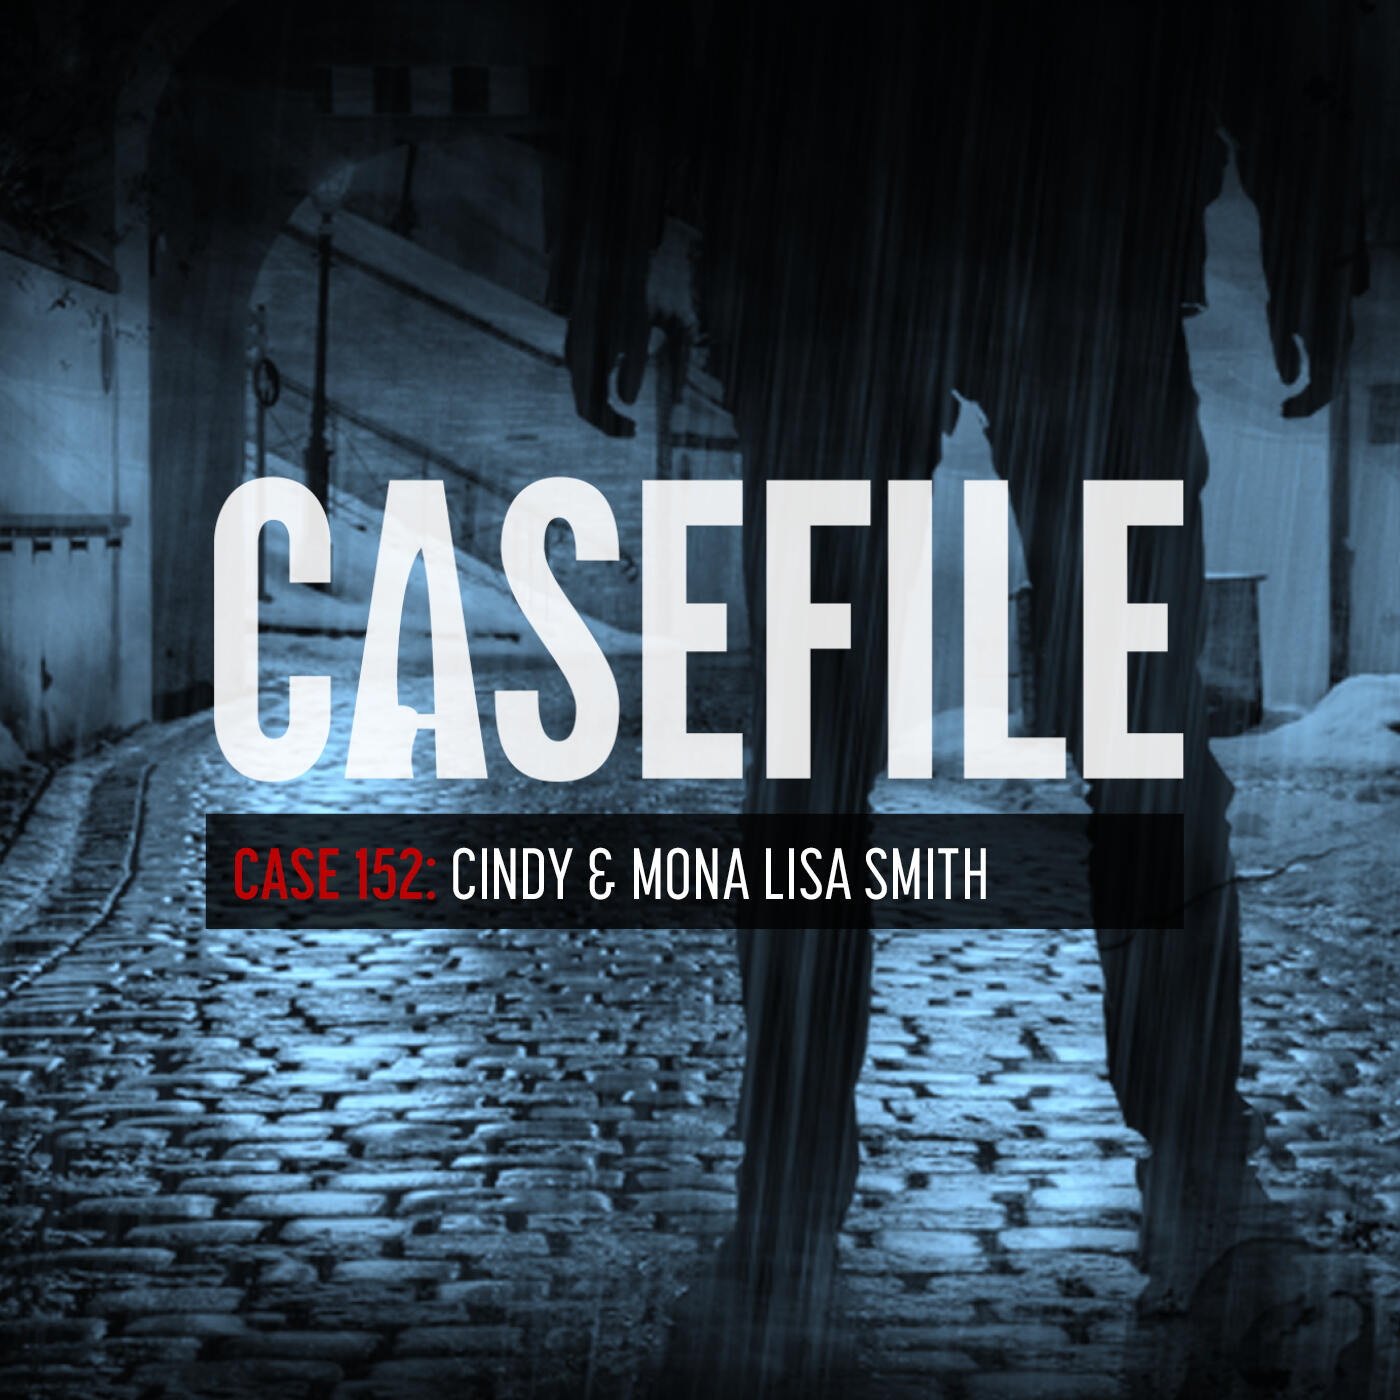 Case 152: Cindy & Mona Lisa Smith